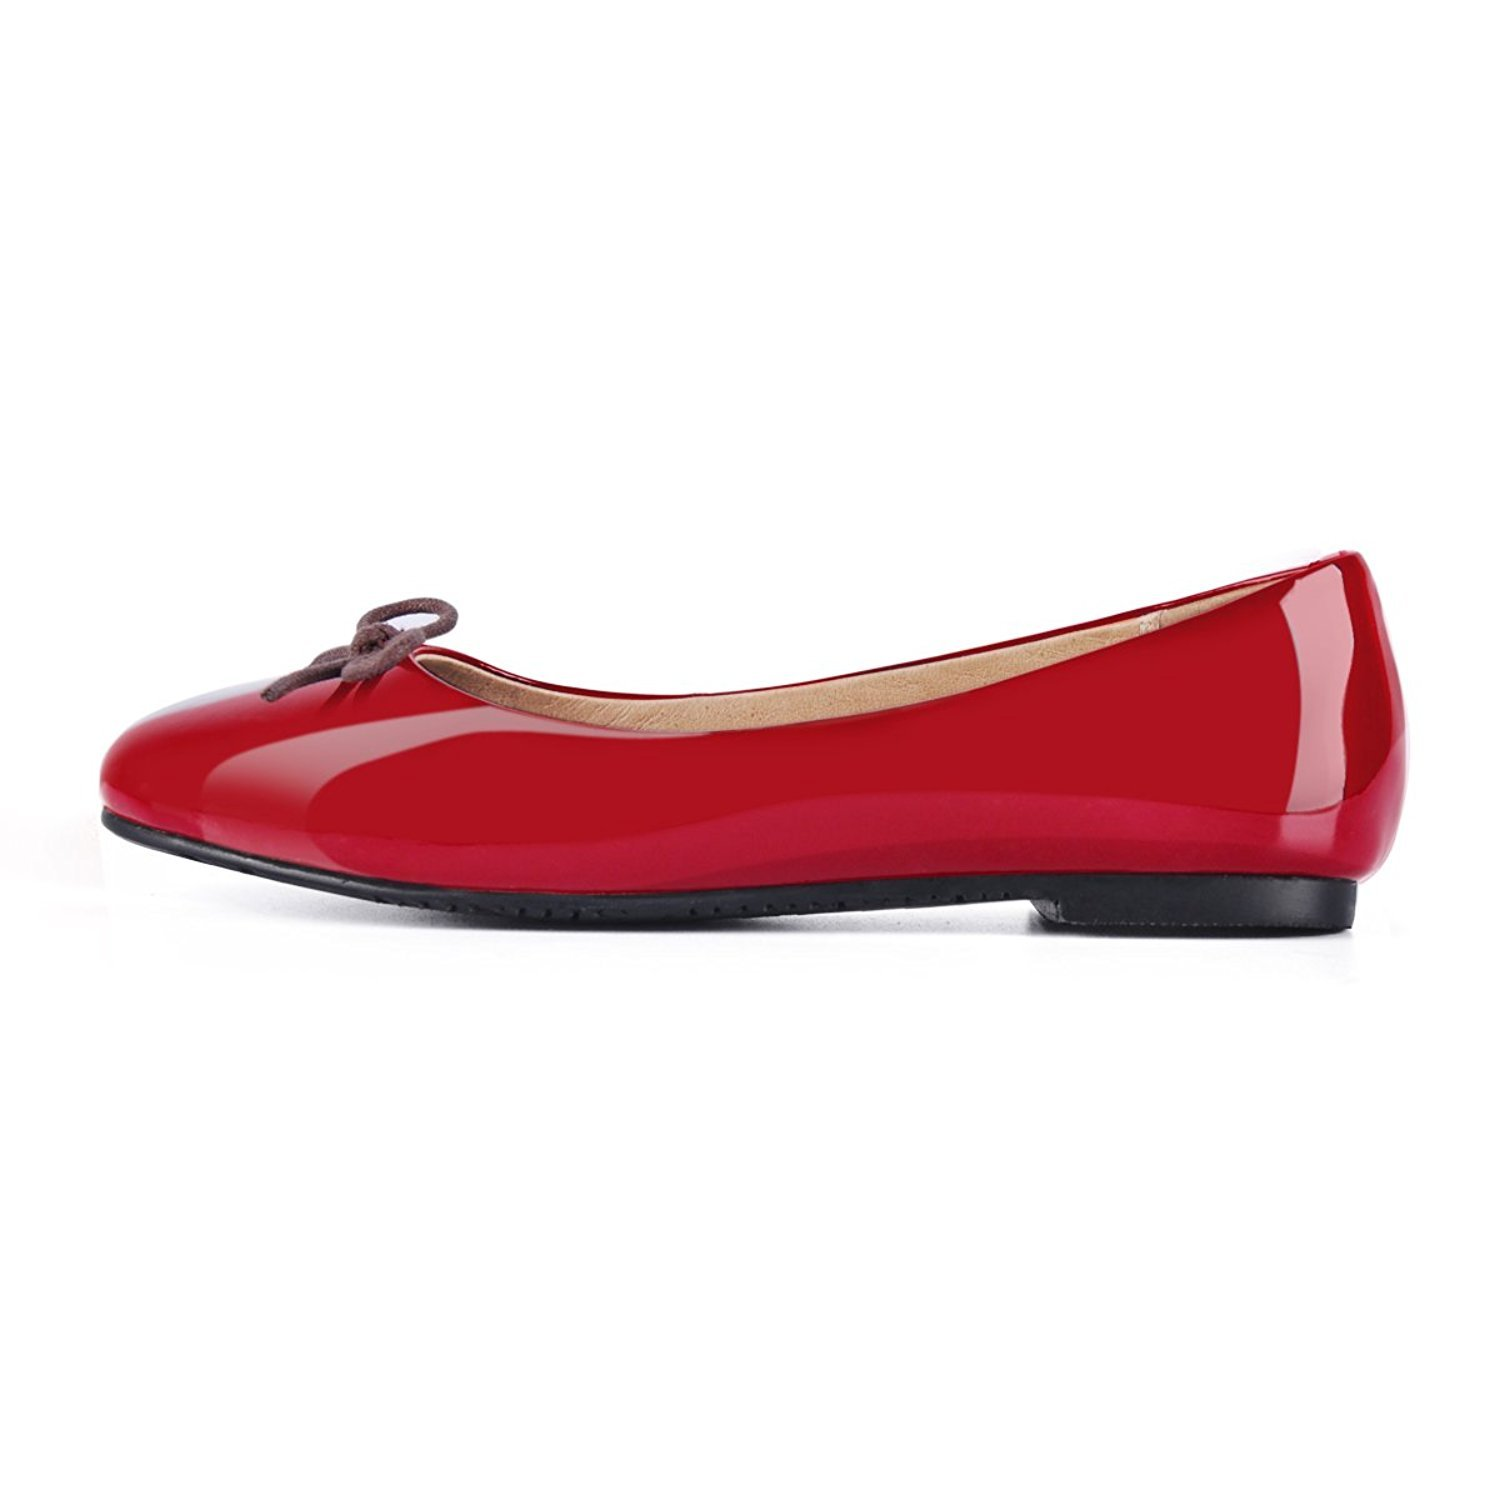 Joogo Women Round Toe Ballet Flats with Bow Tie Slip On Casual Comfortable Shoes B0788HNW1W 6 B(M) US|Red